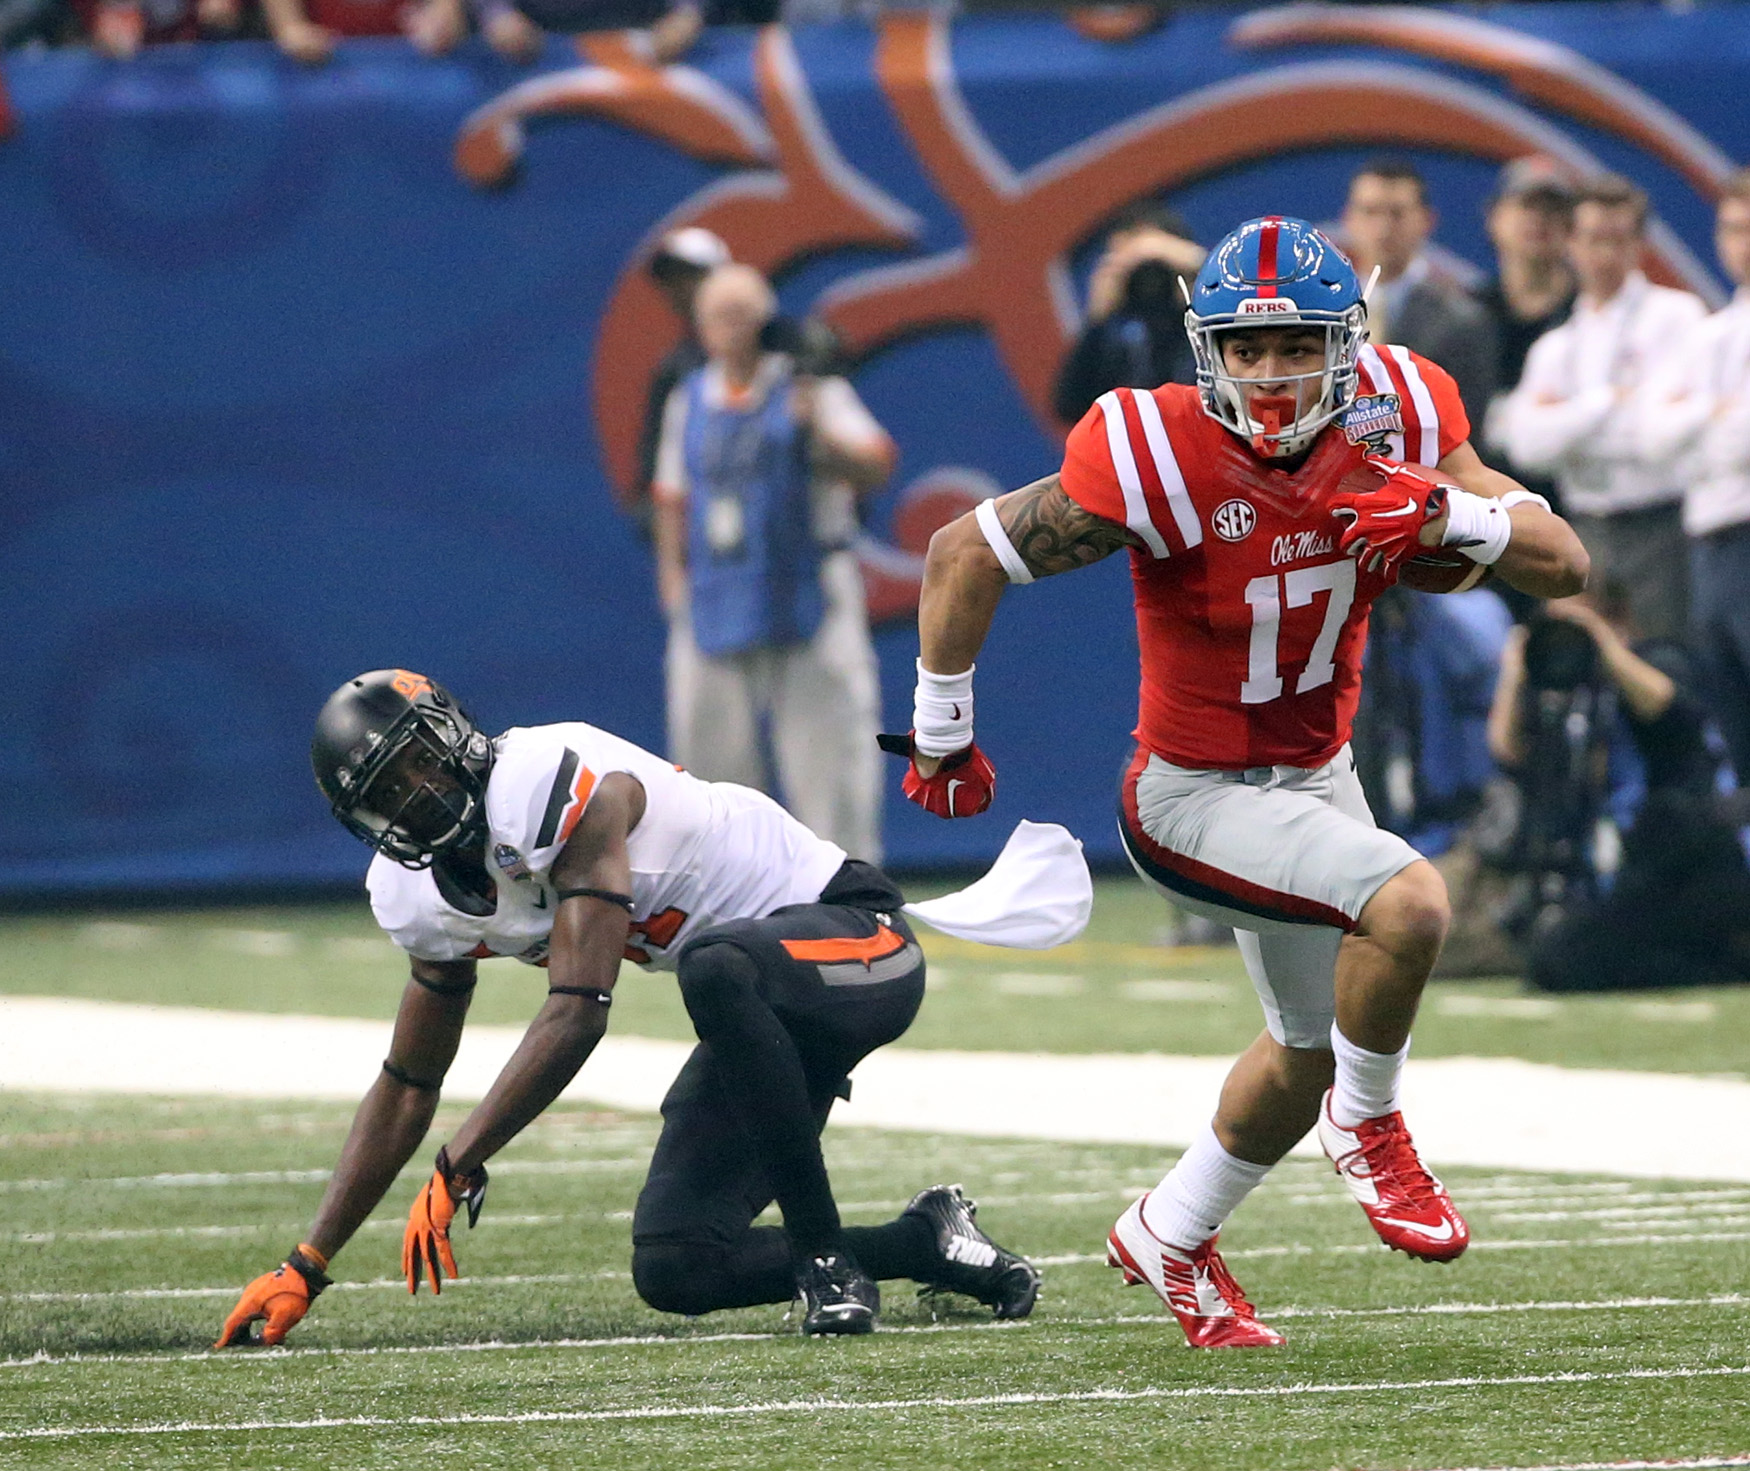 Ole Miss Football vs Oklahoma State at the 2016 AllState Sugar Bowl in New Orleans, LA.